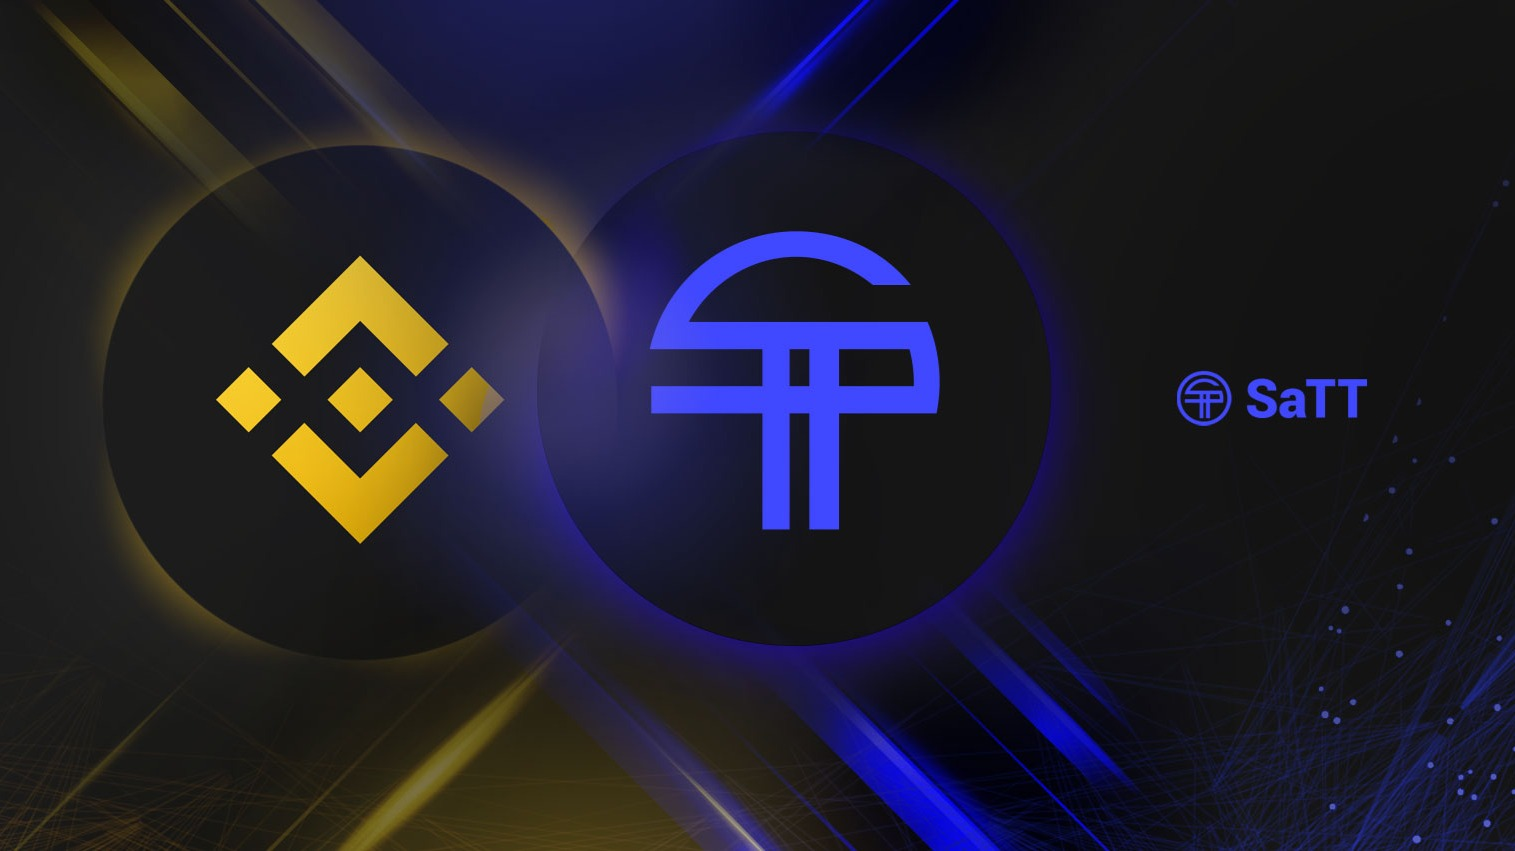 Smart Advertising token SaTT Lists on Binance DEX, 2nd decentralized exchange since Uniswap